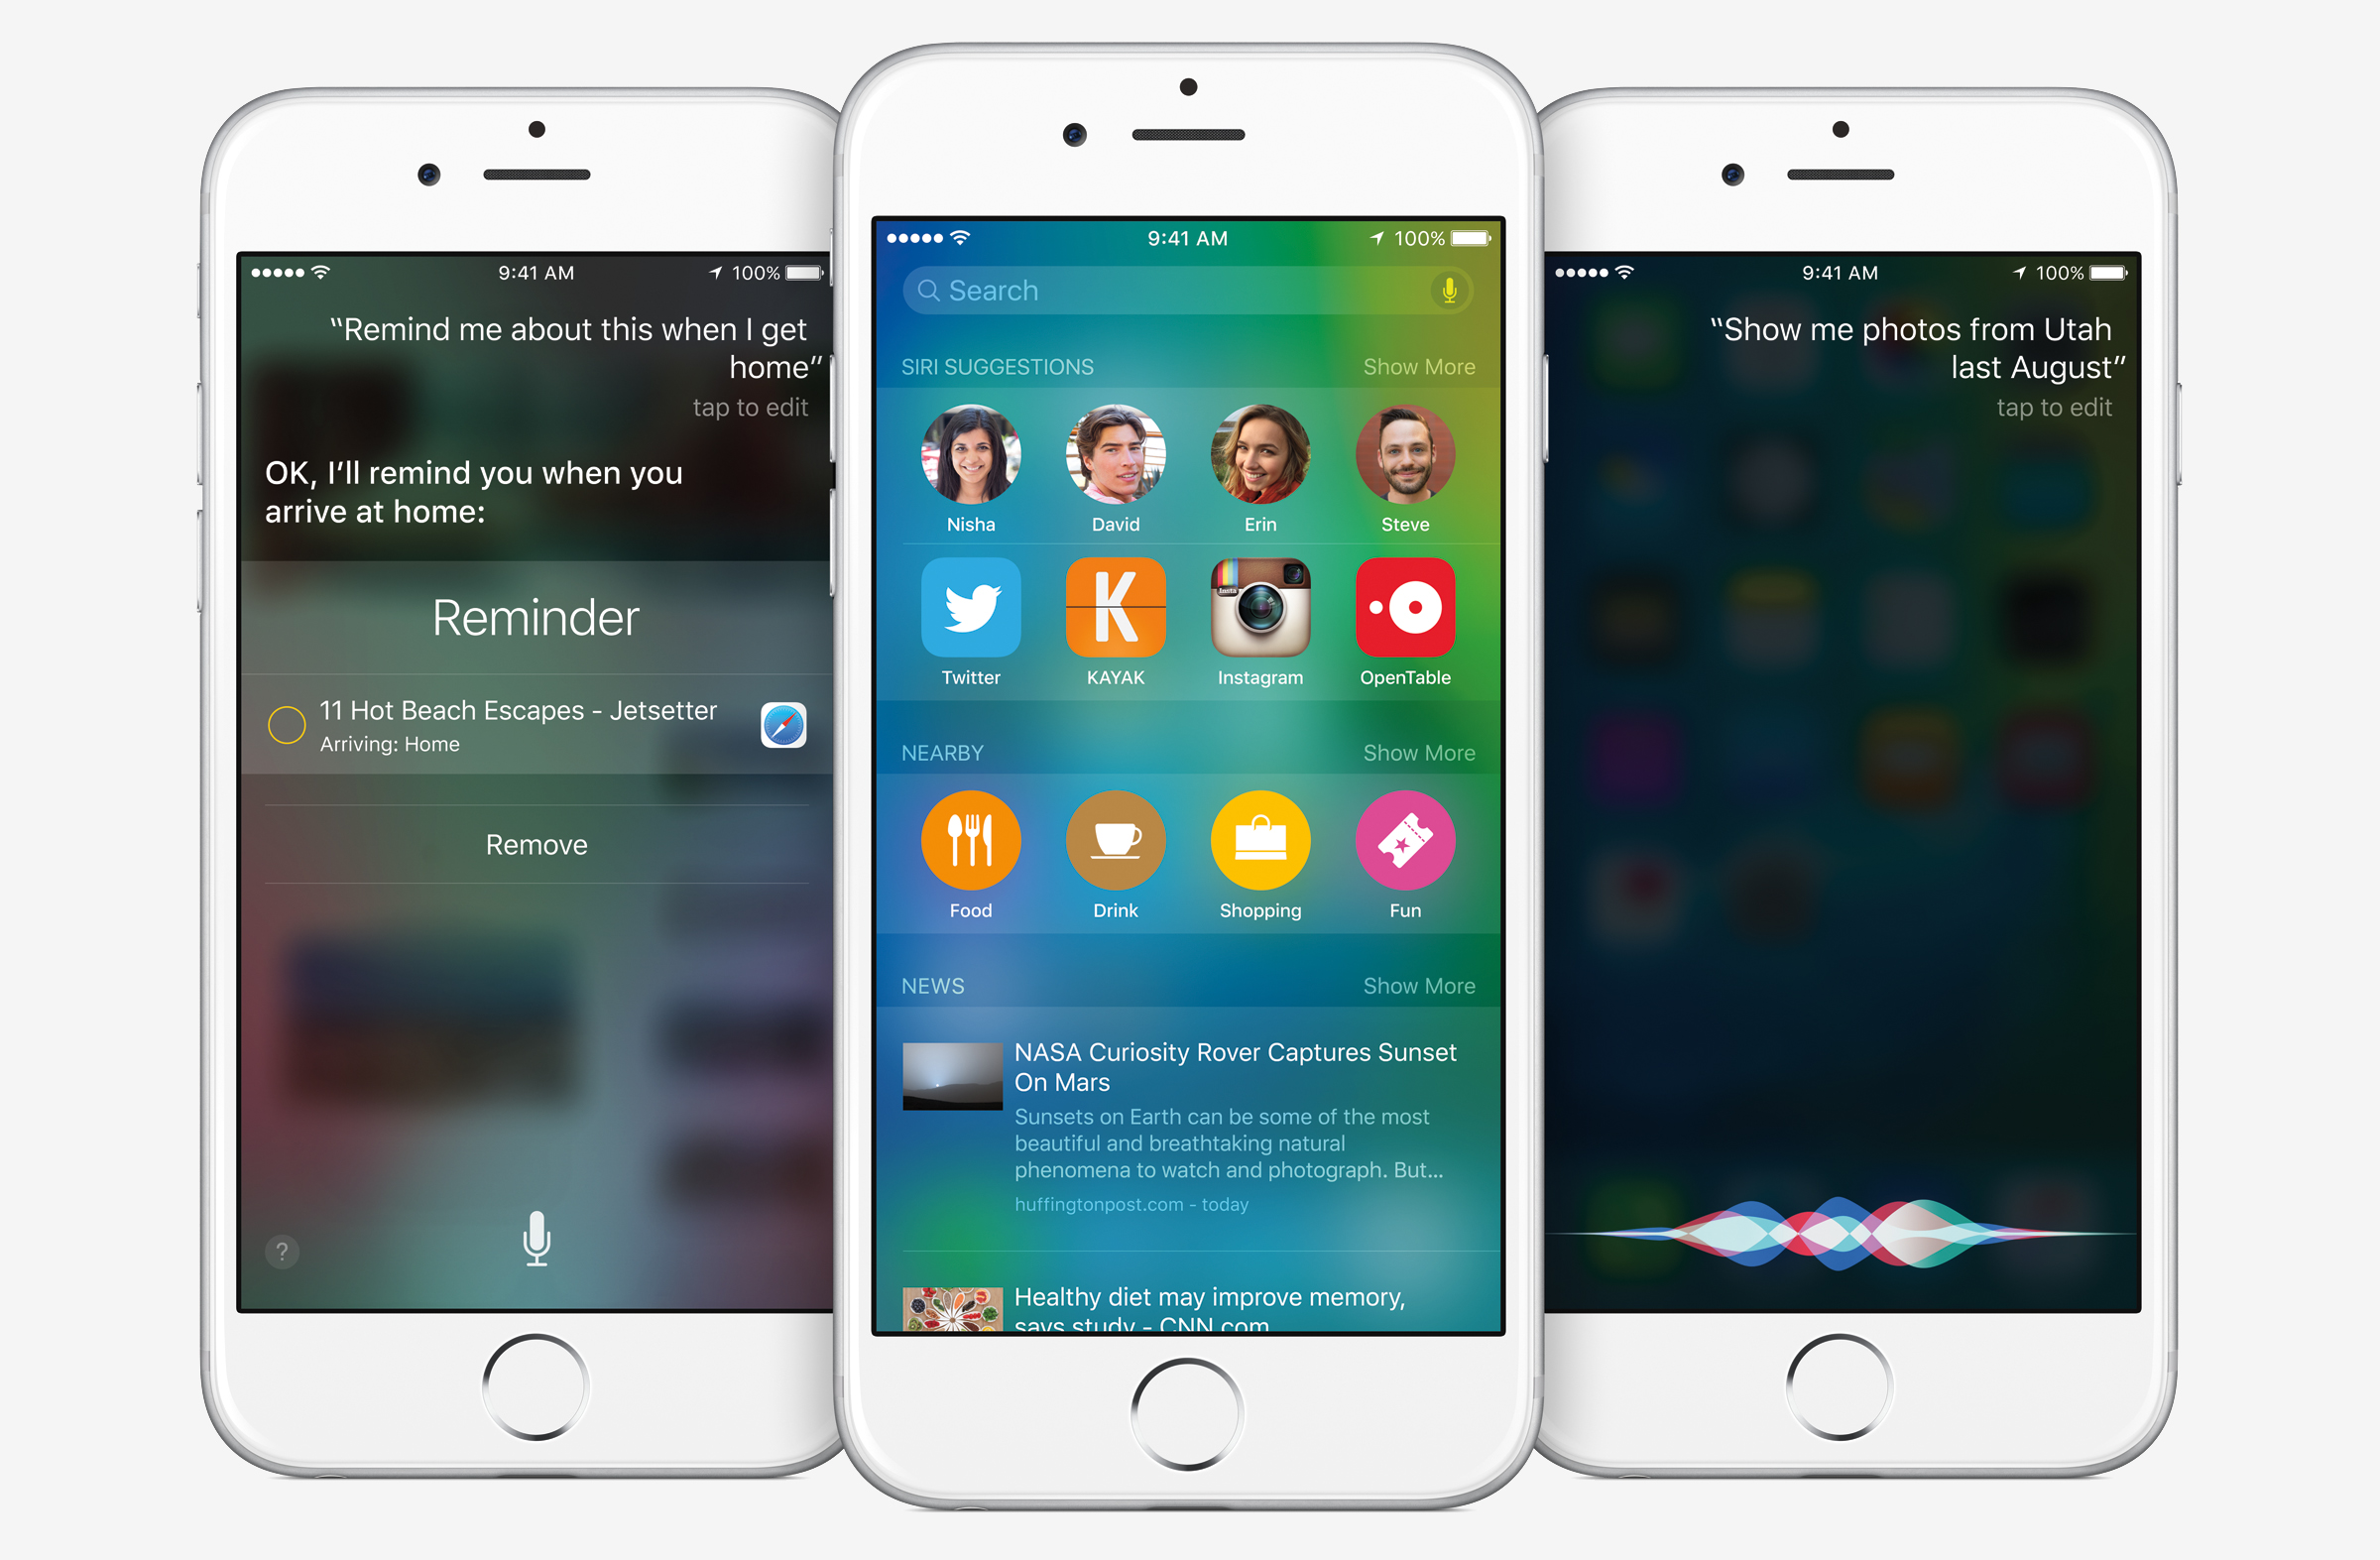 Apple's new iOS 9 operating system